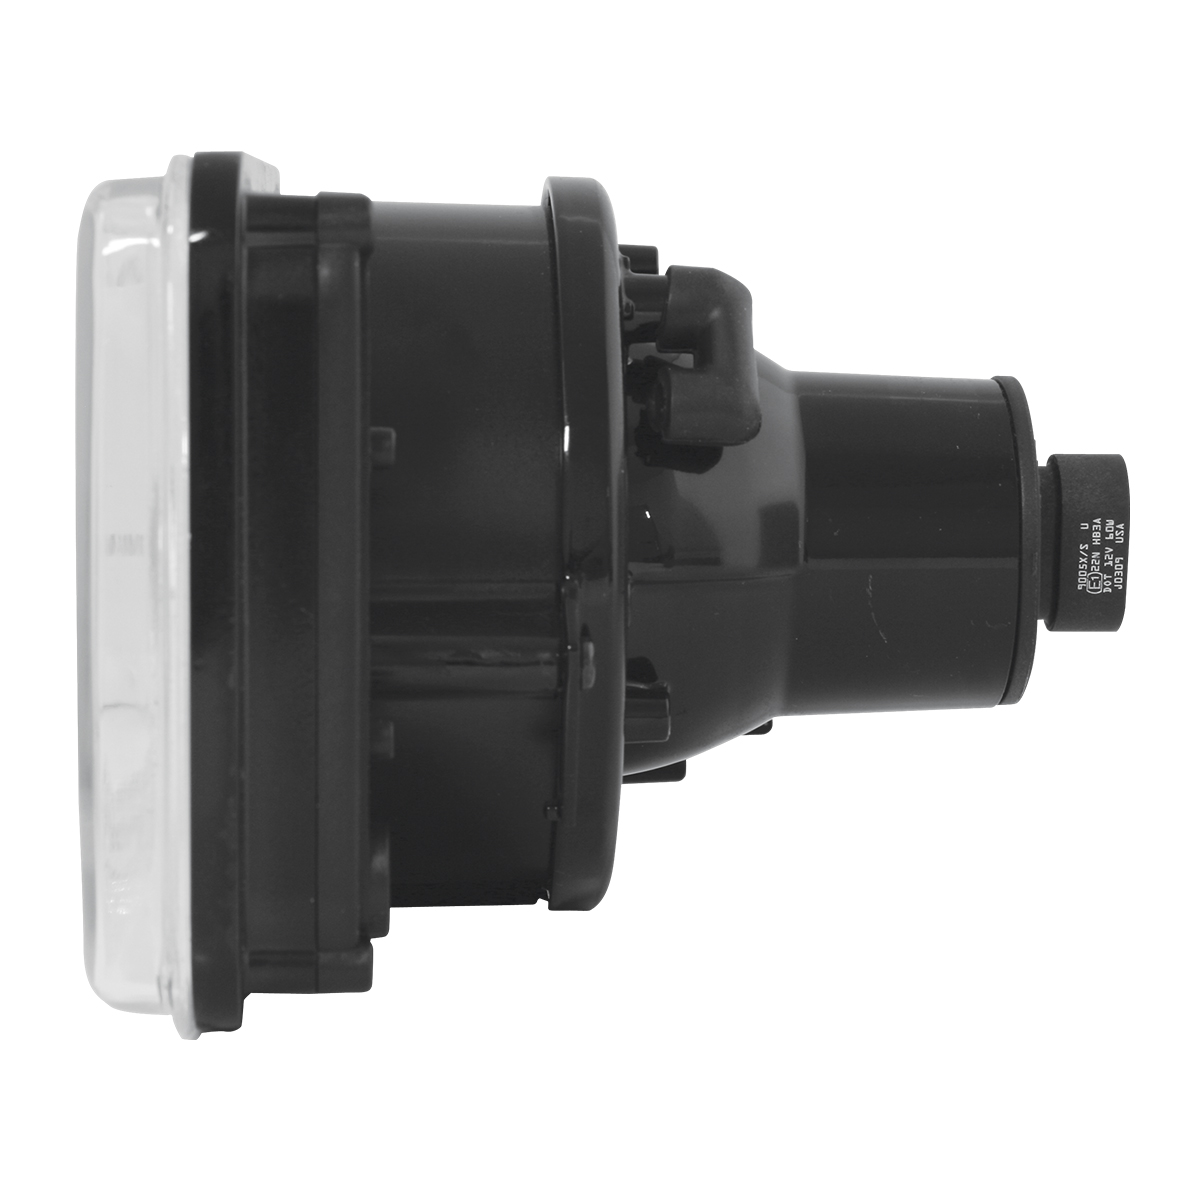 #77403 Projector/Fish Eye Lens – Side View